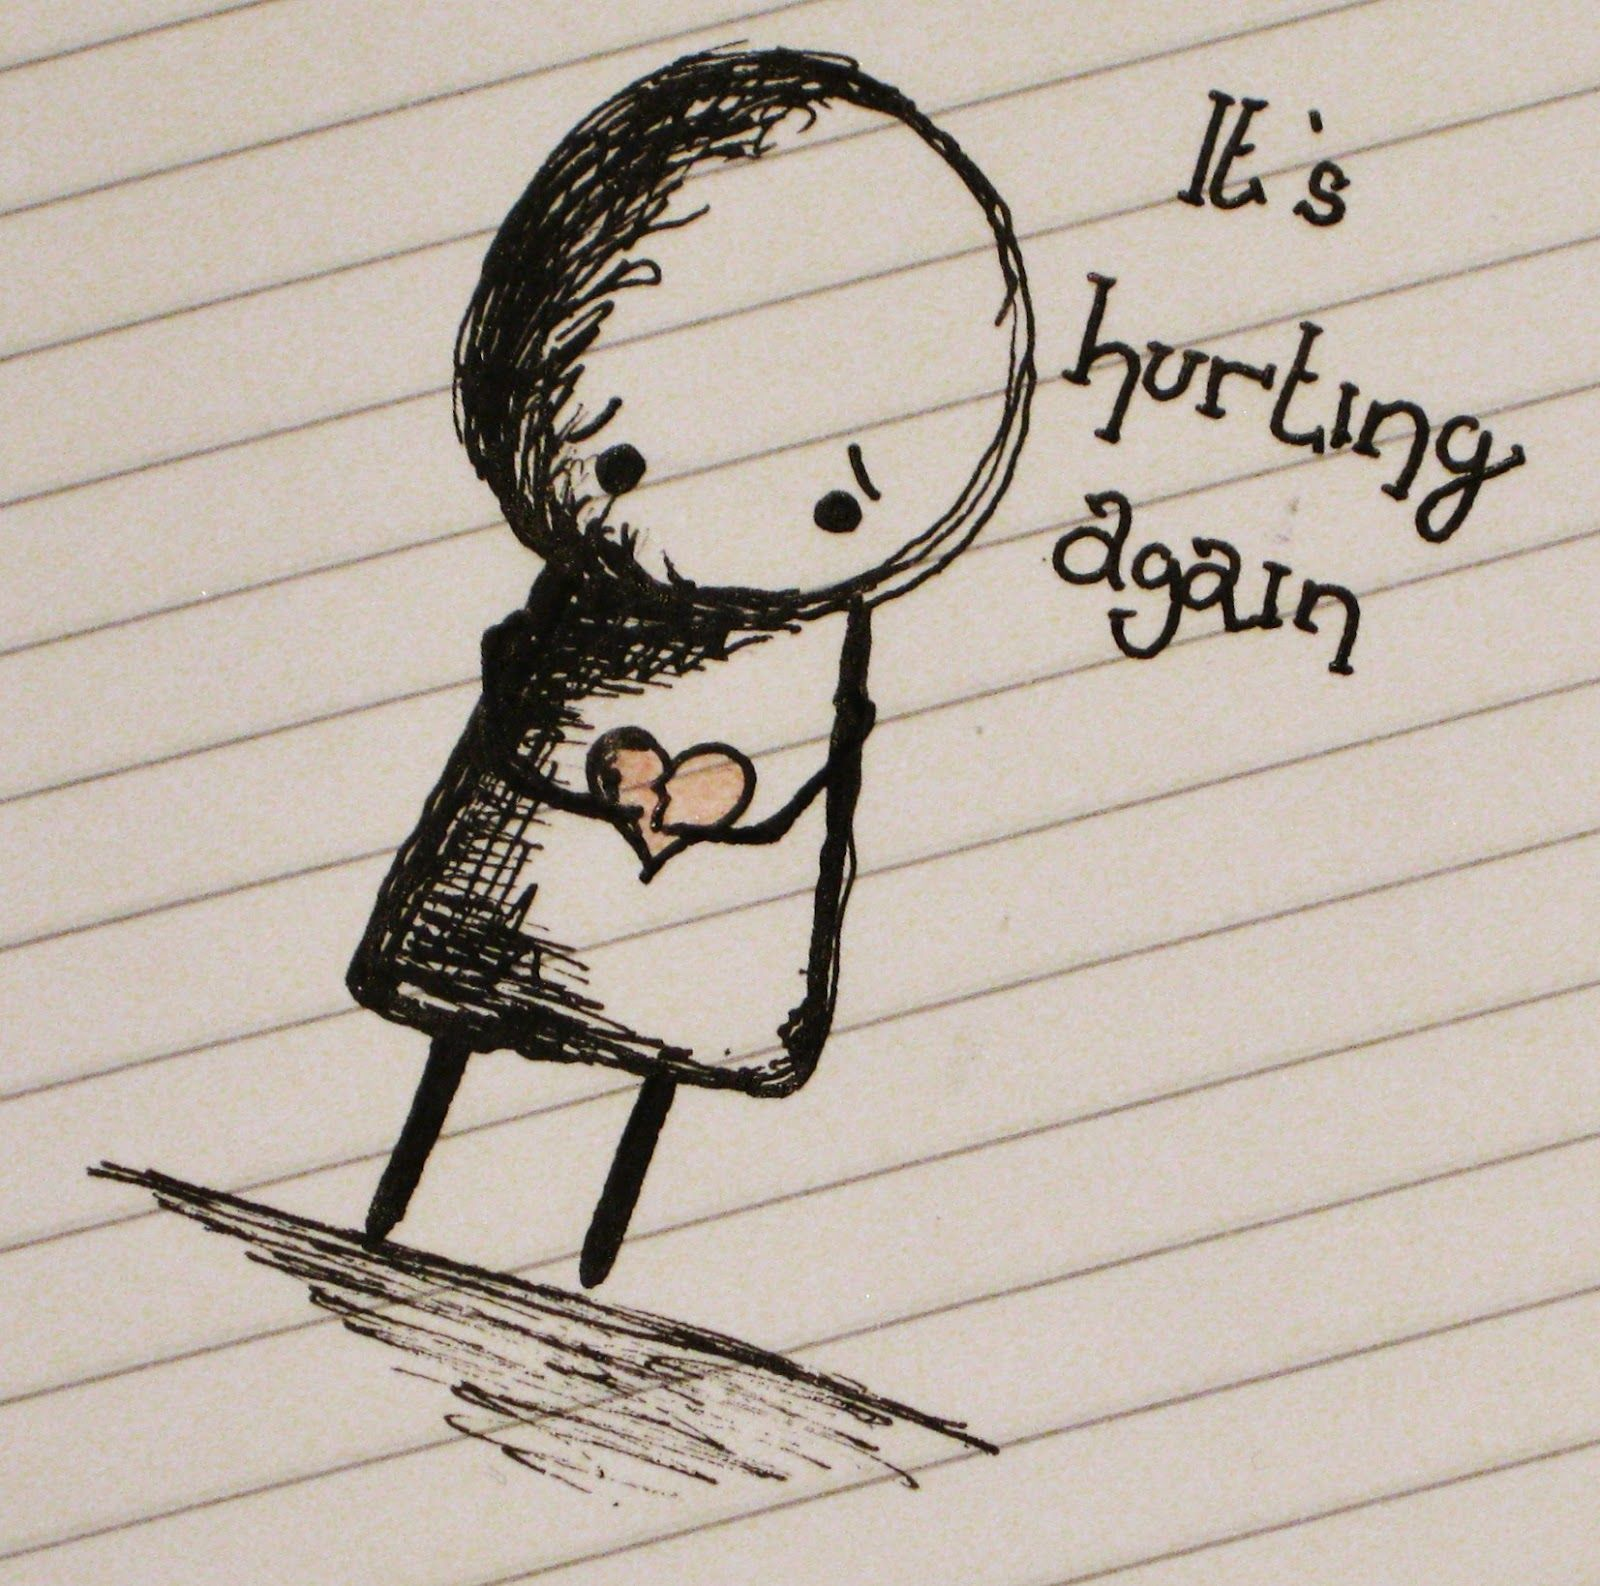 1600x1586 Hurt wallpapers - free love wallpapers for mobile cell phone